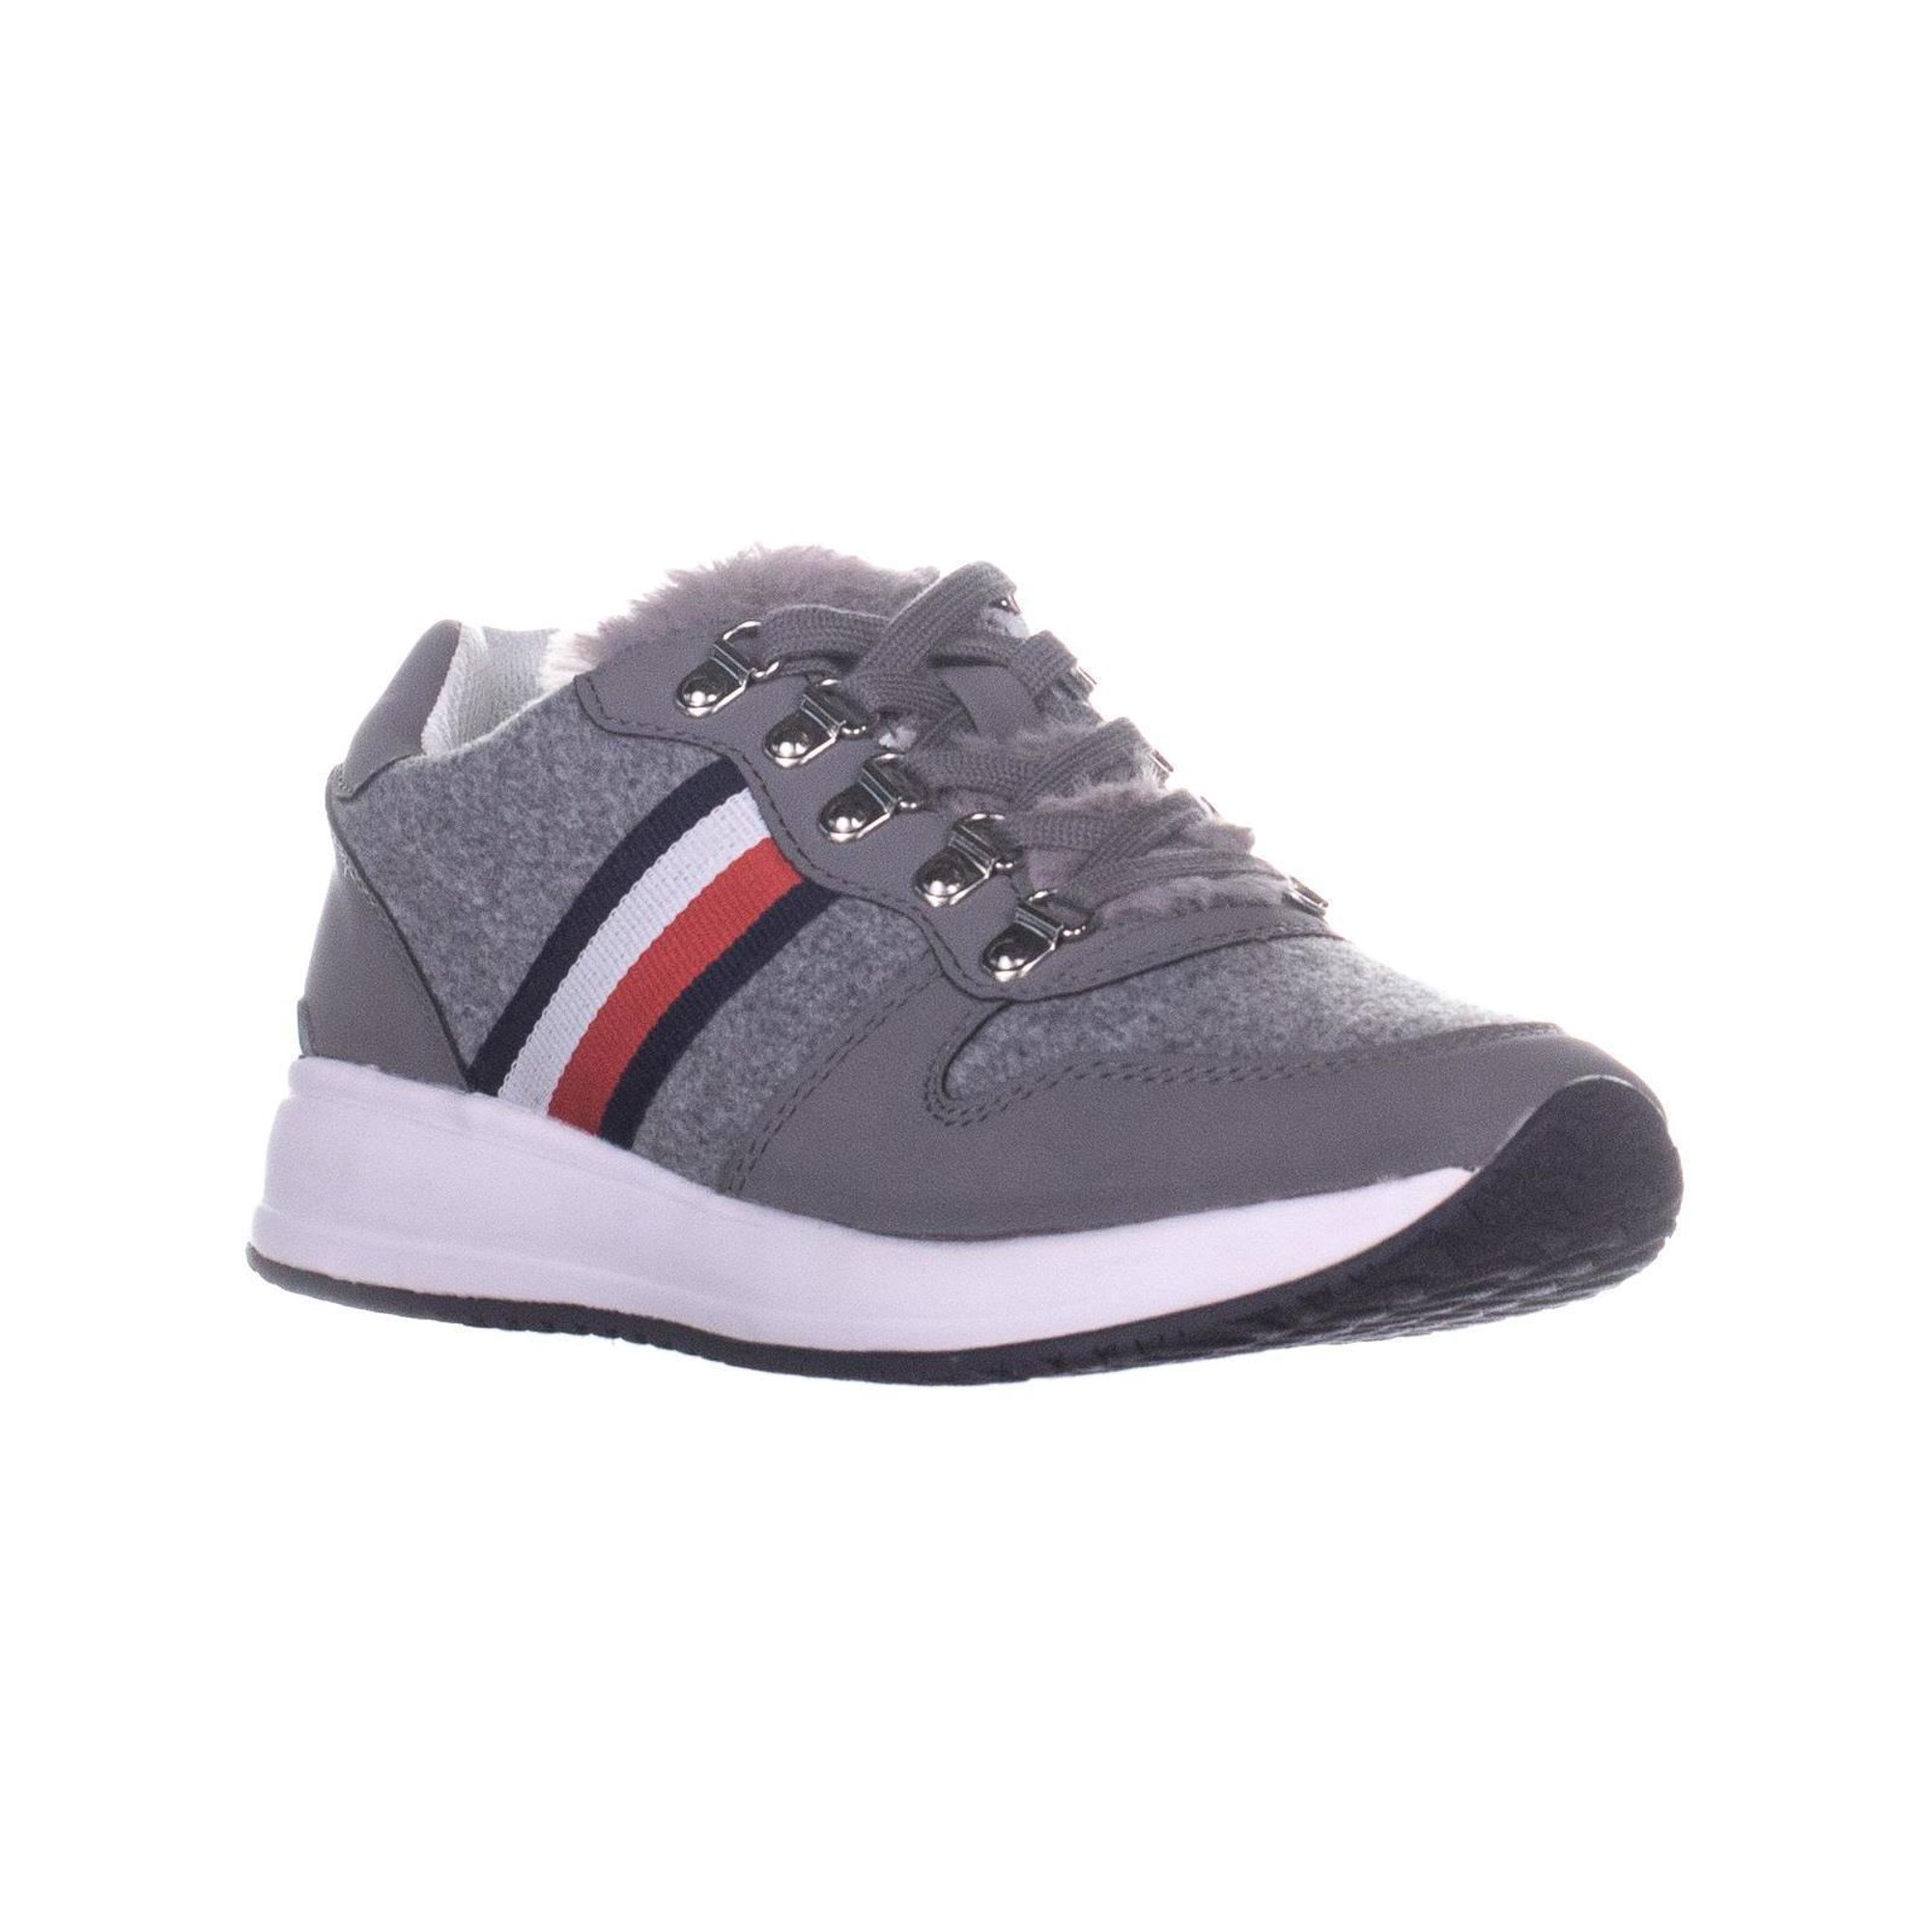 aa85b2b8 Tommy Hilfiger Riplee Lace Up Sneakers, Light Gray | Walmart Canada